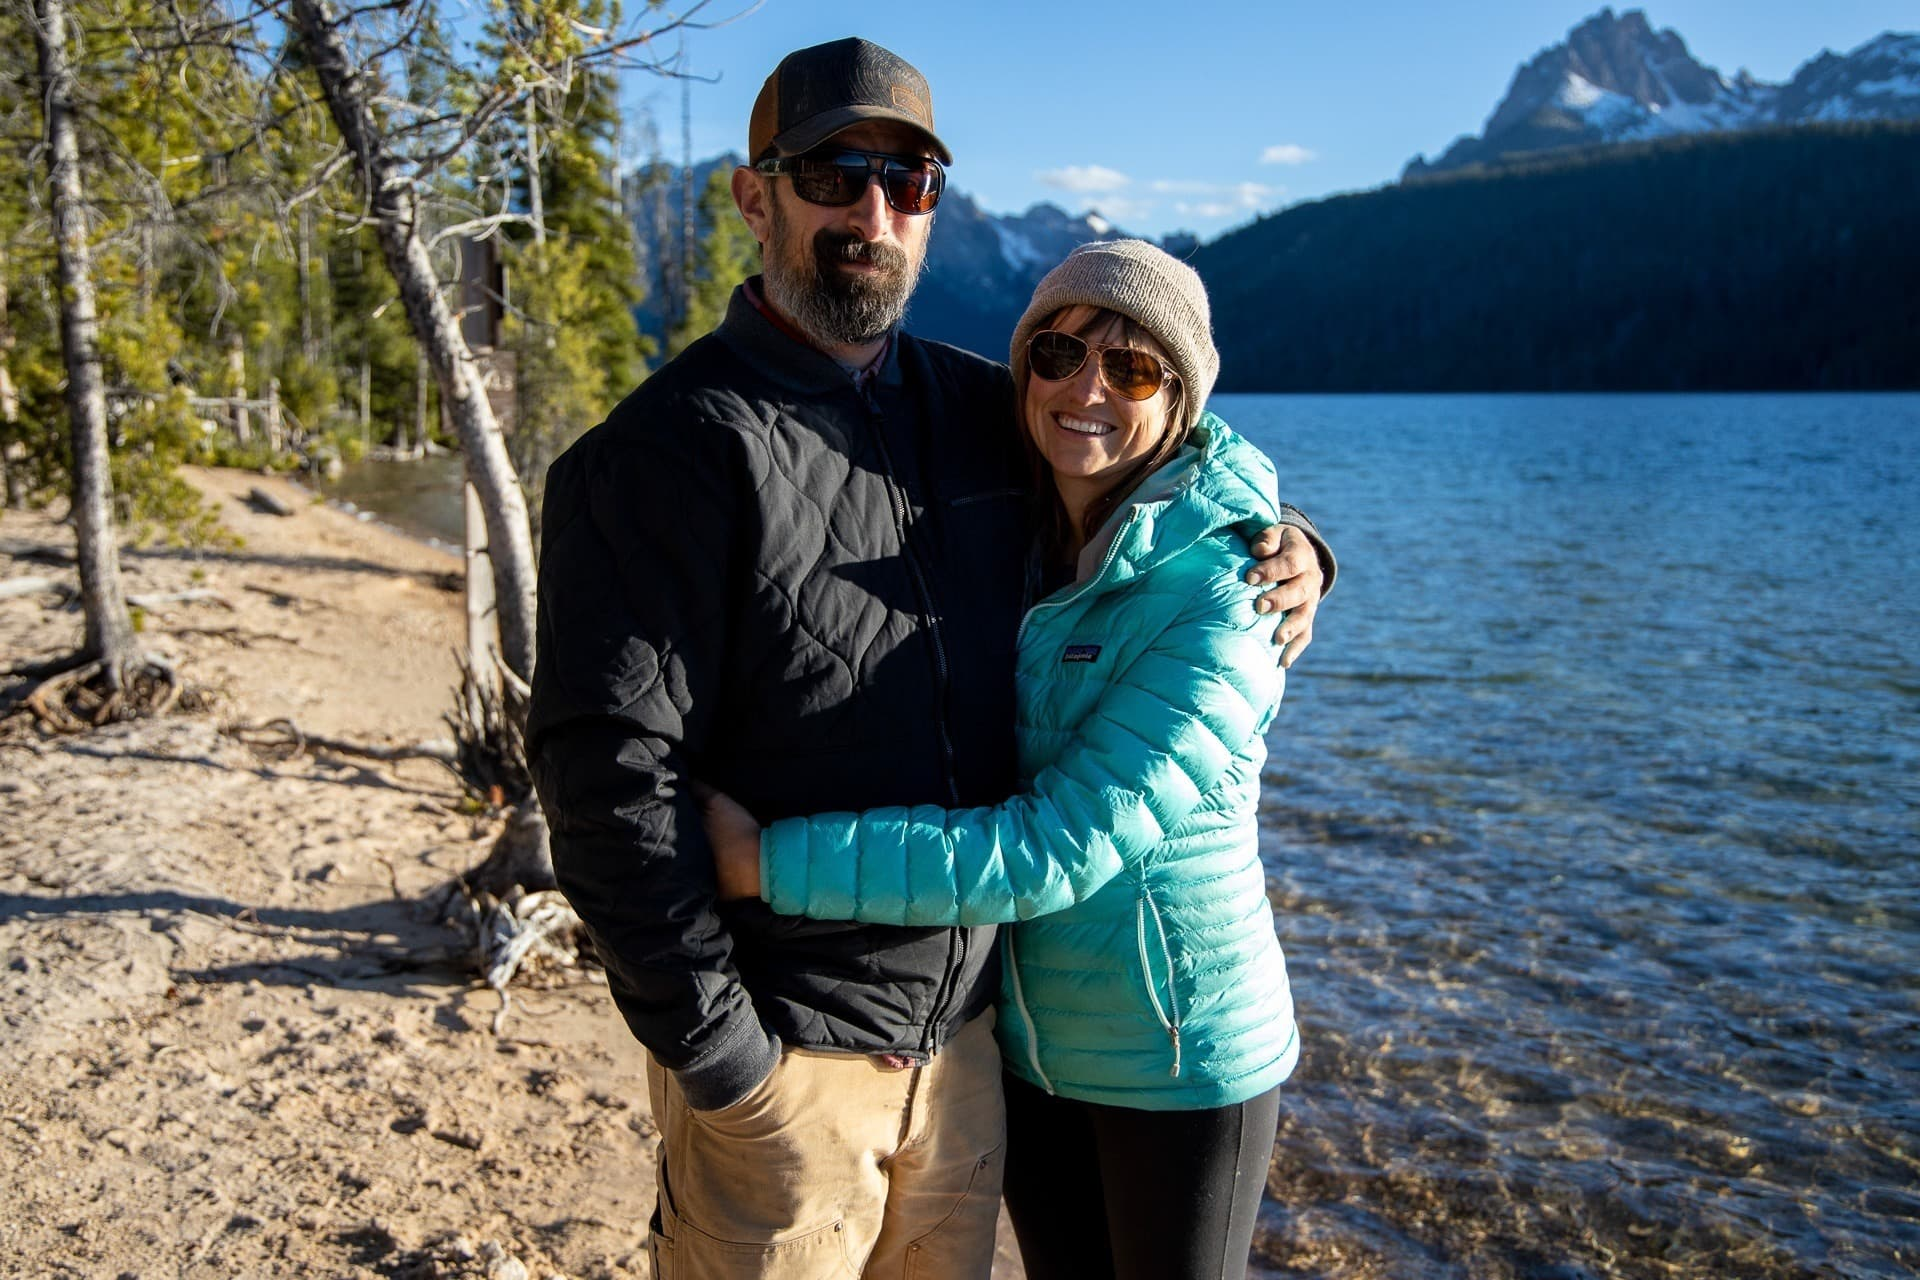 Our tips and advice on how to successfully introduce your partner to camping for the first time.